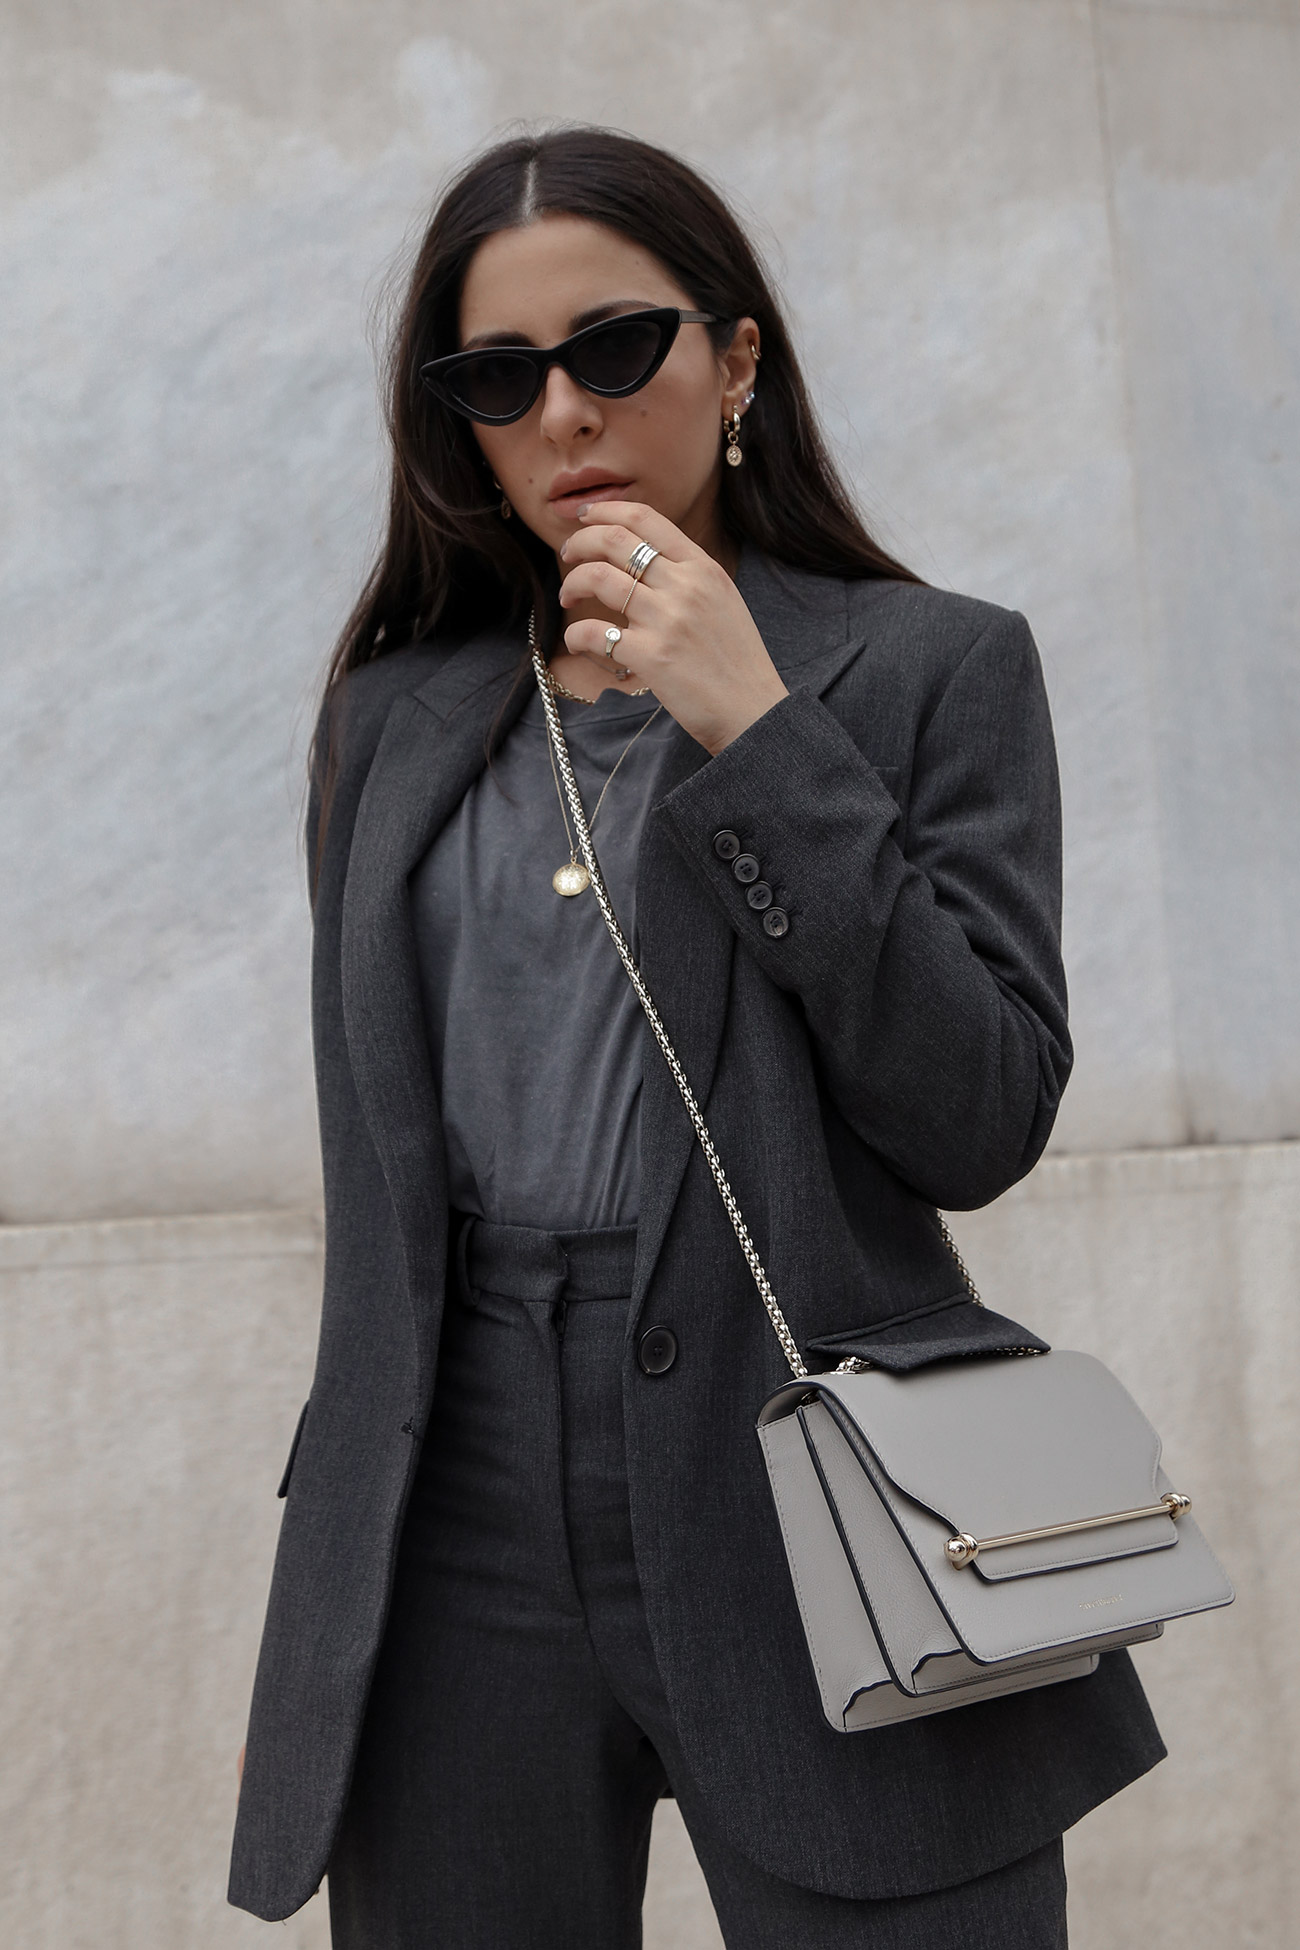 Stella Asteria wearing grey suit with grey Strathberry bag